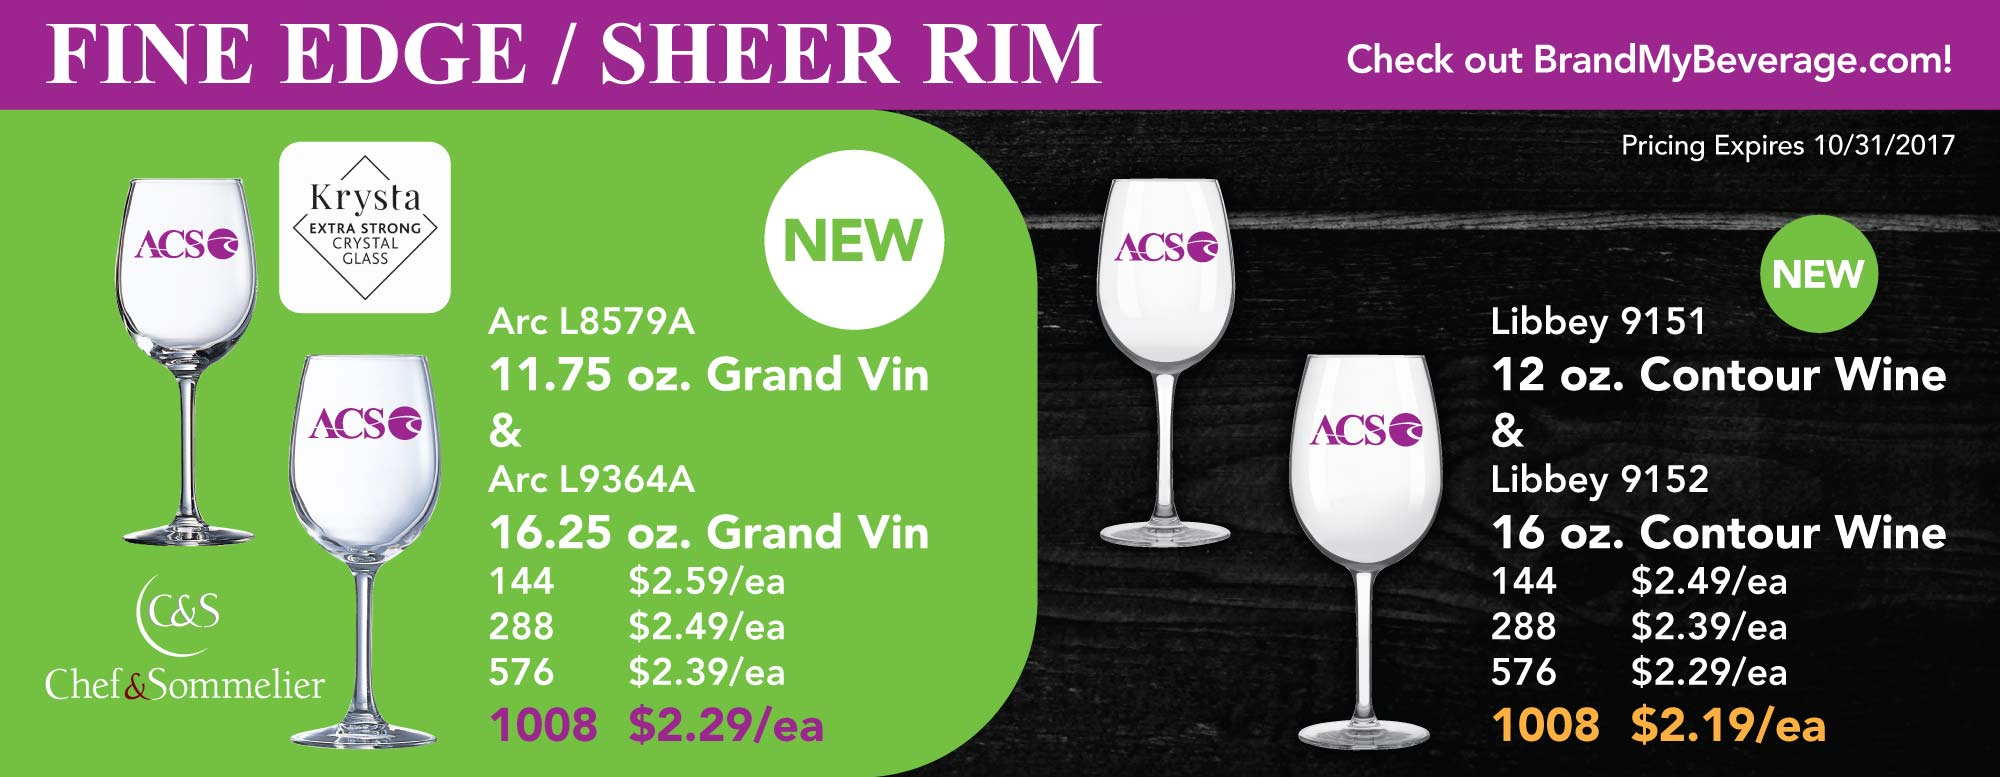 FINE EDGE / SHEER RIM WINE GLASSES